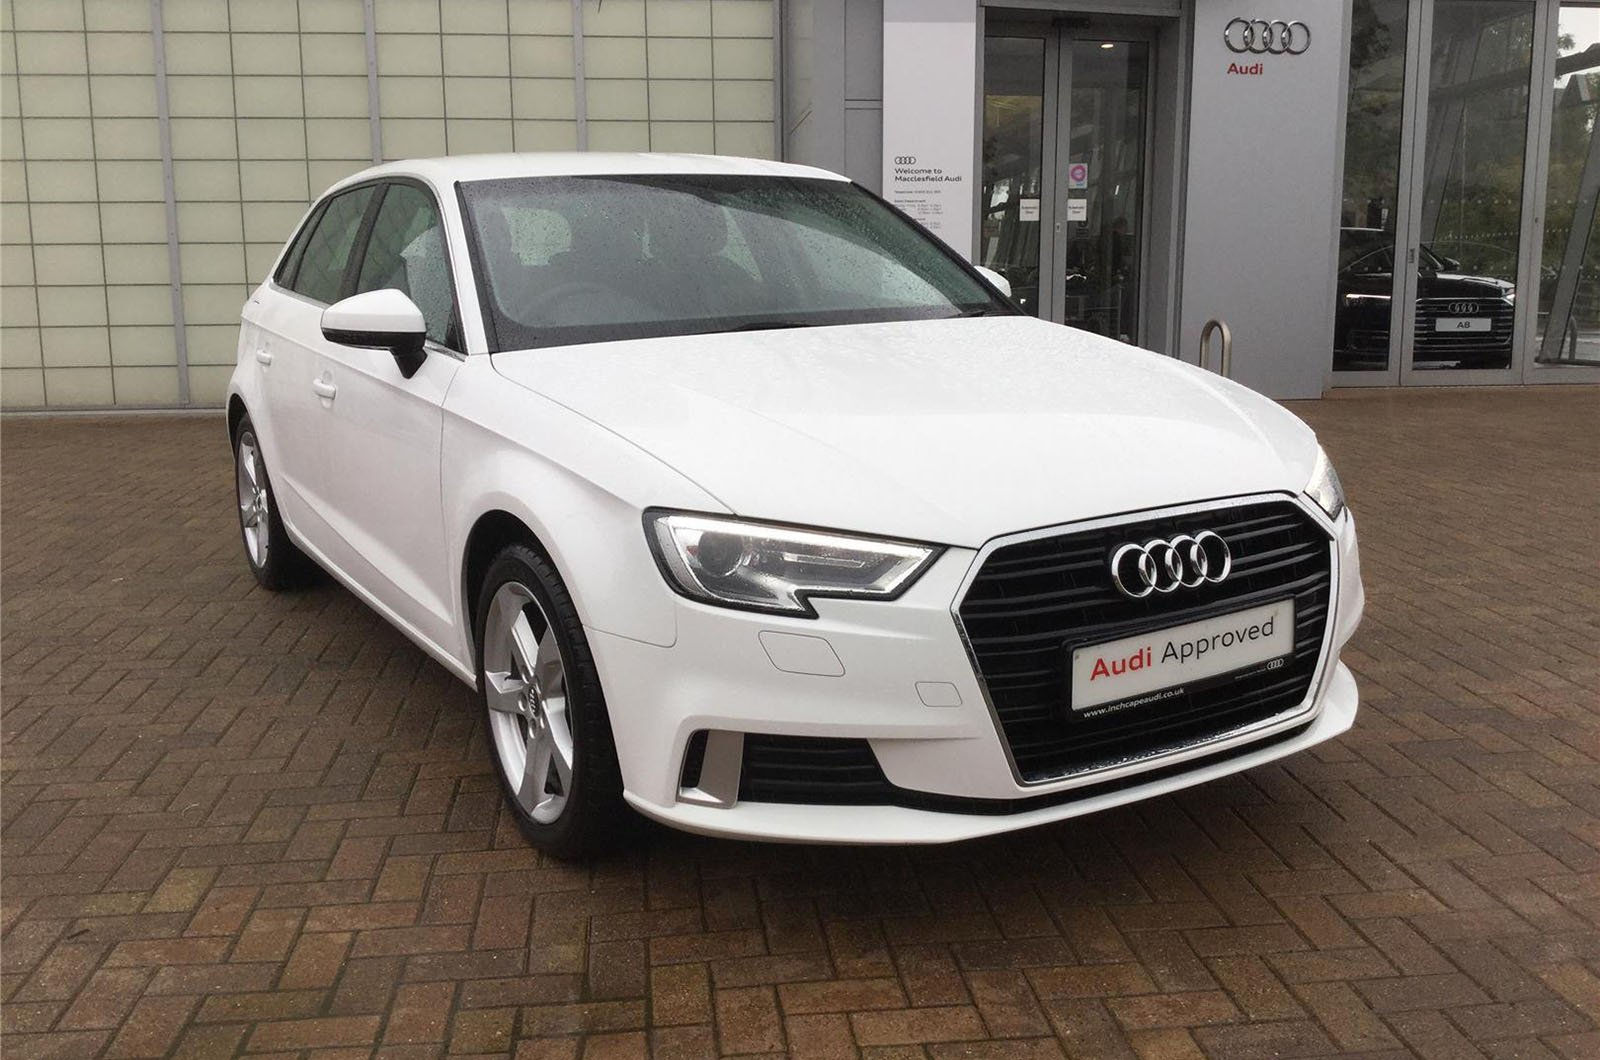 Used alternative to a Seat Leon: Audi A3